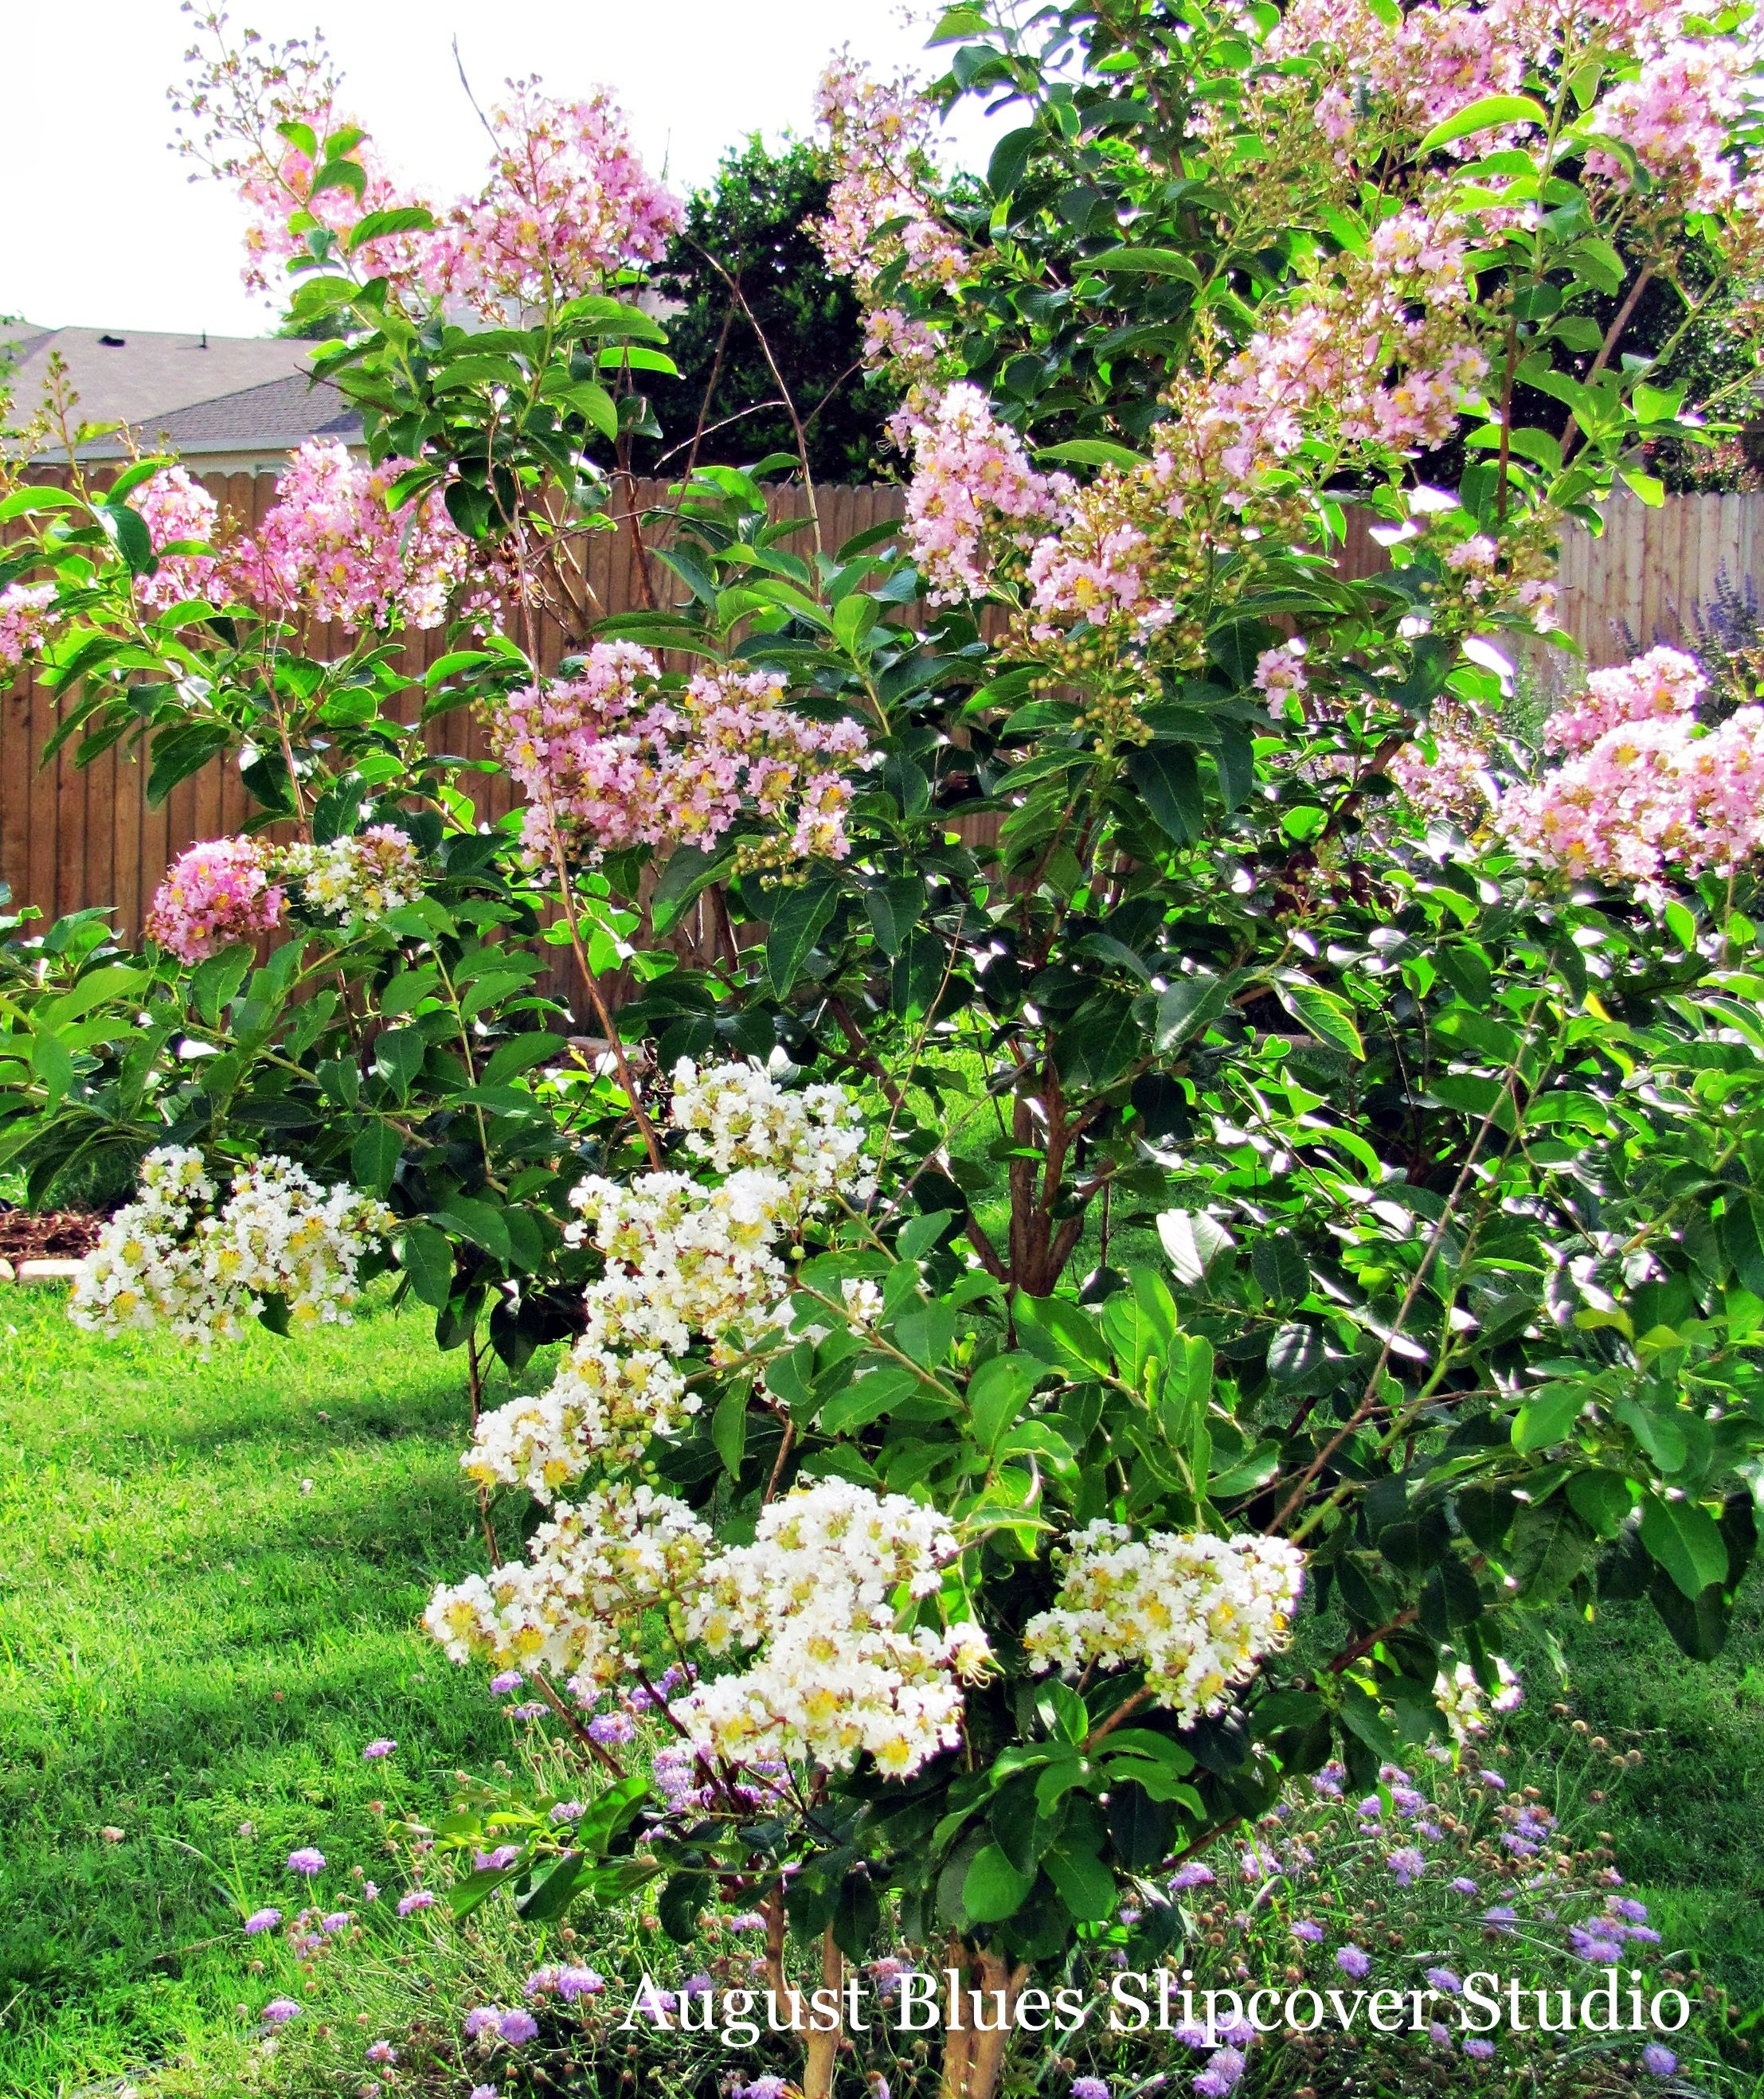 August Blues - Crepe Myrtle